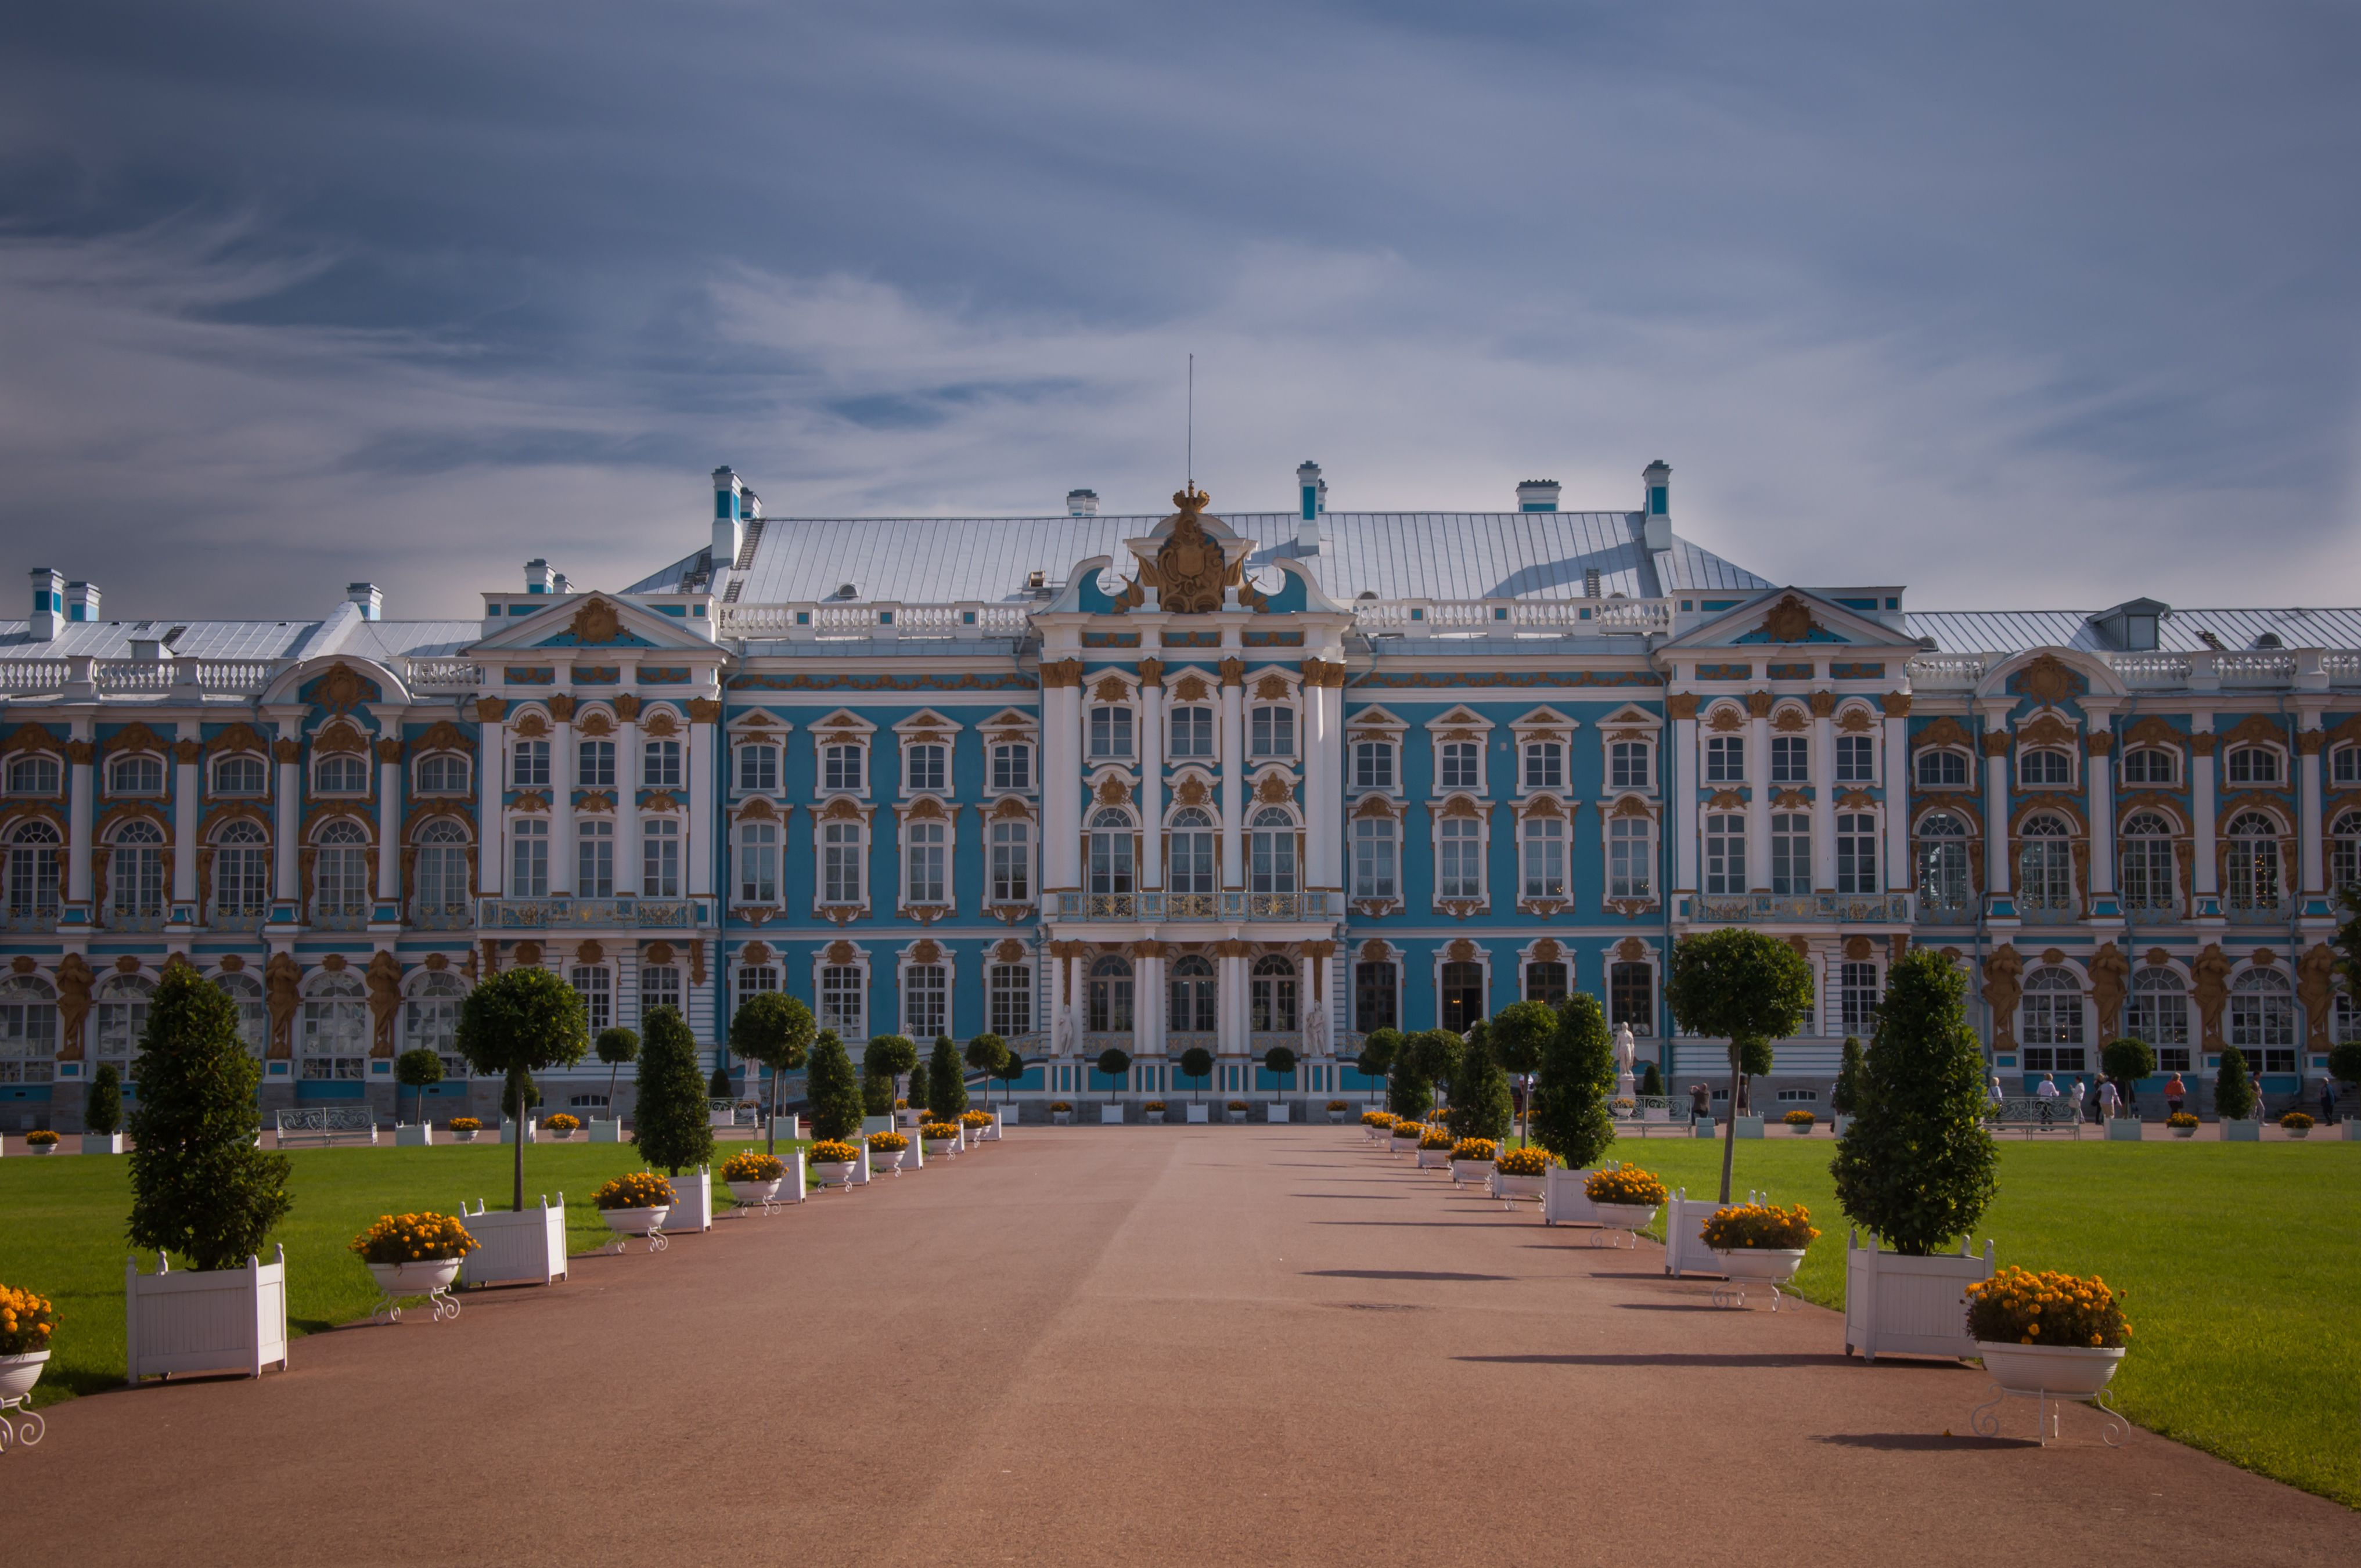 ornate palace, horizontal orientation, blue facade, wide roadway leading to columned entry